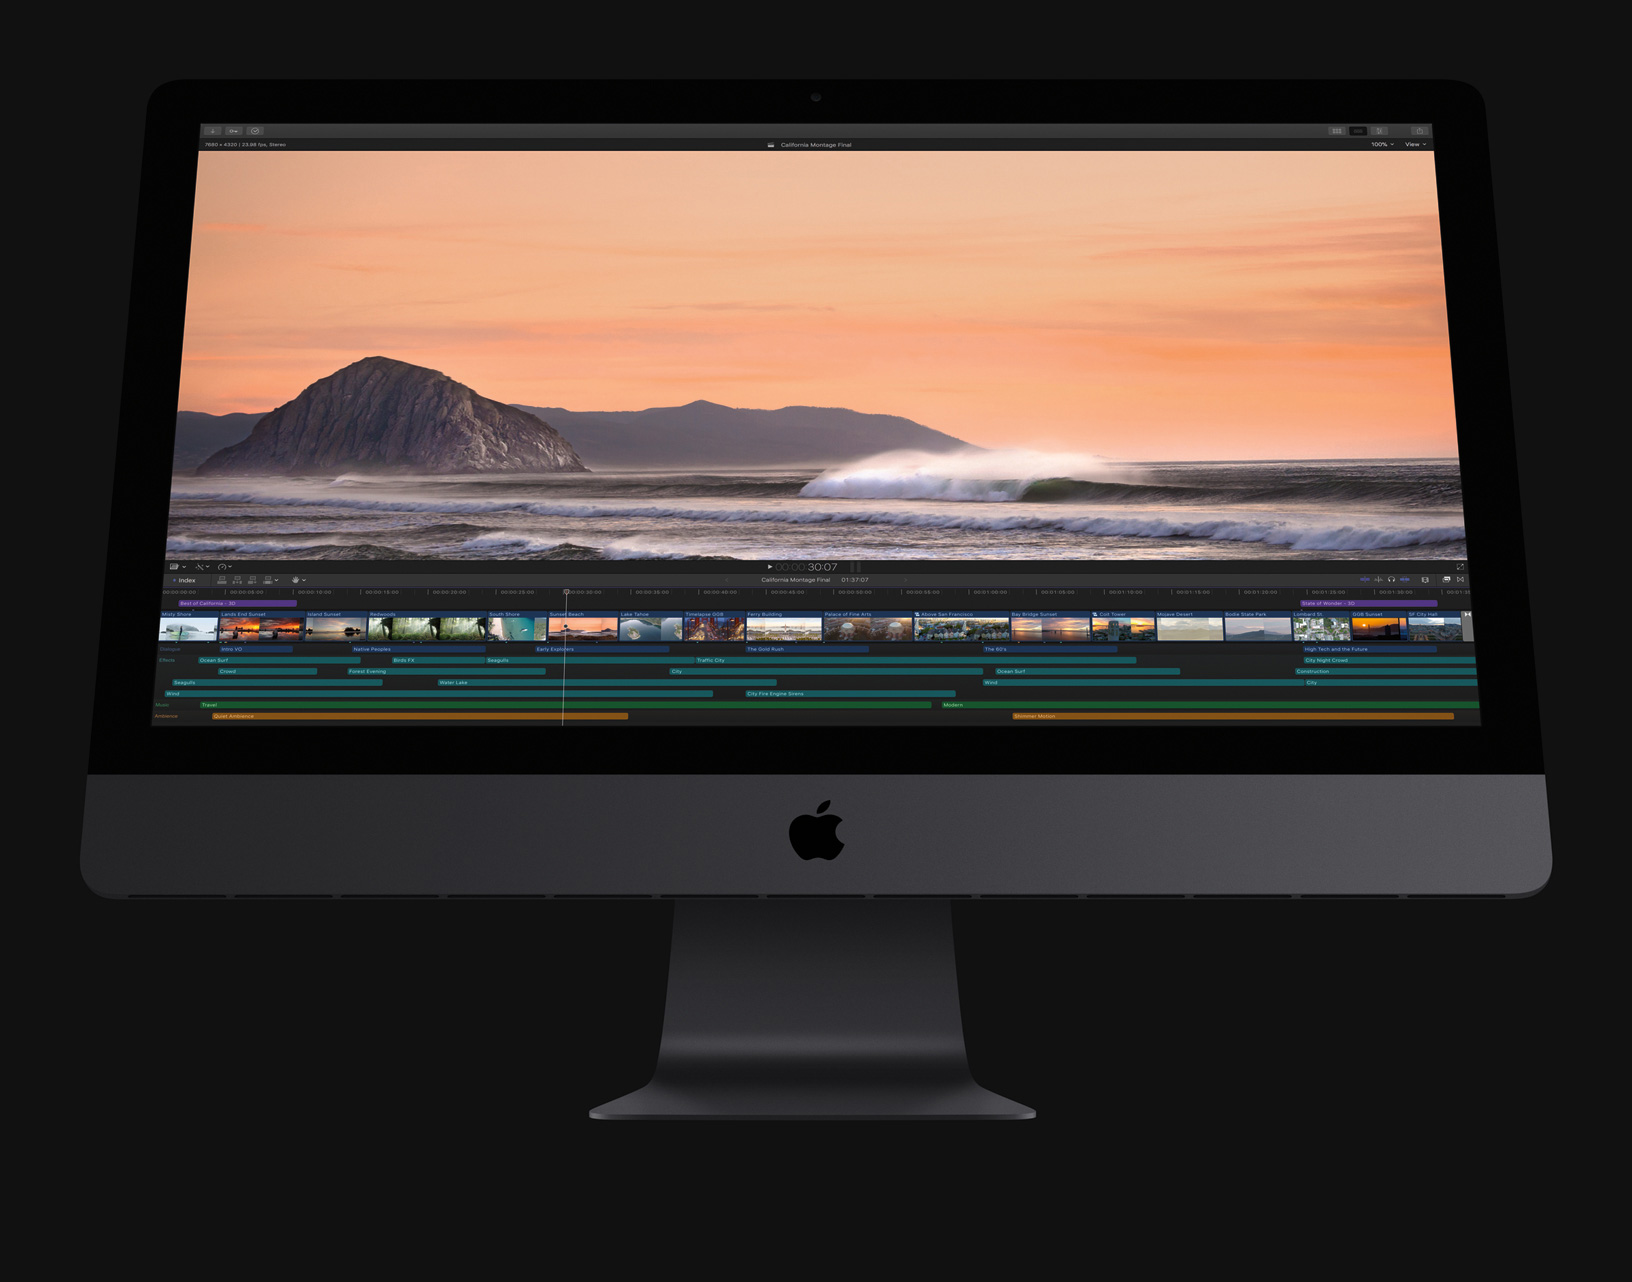 Apple Final Cut Pro 10.4.1